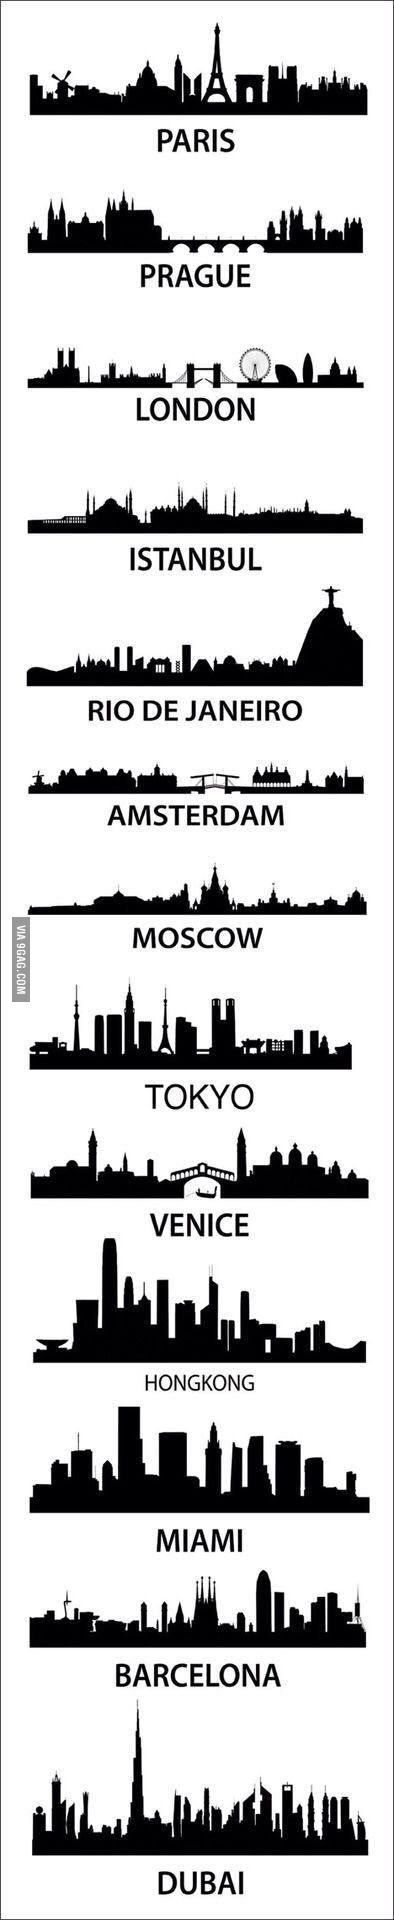 Skylines from all over the world.